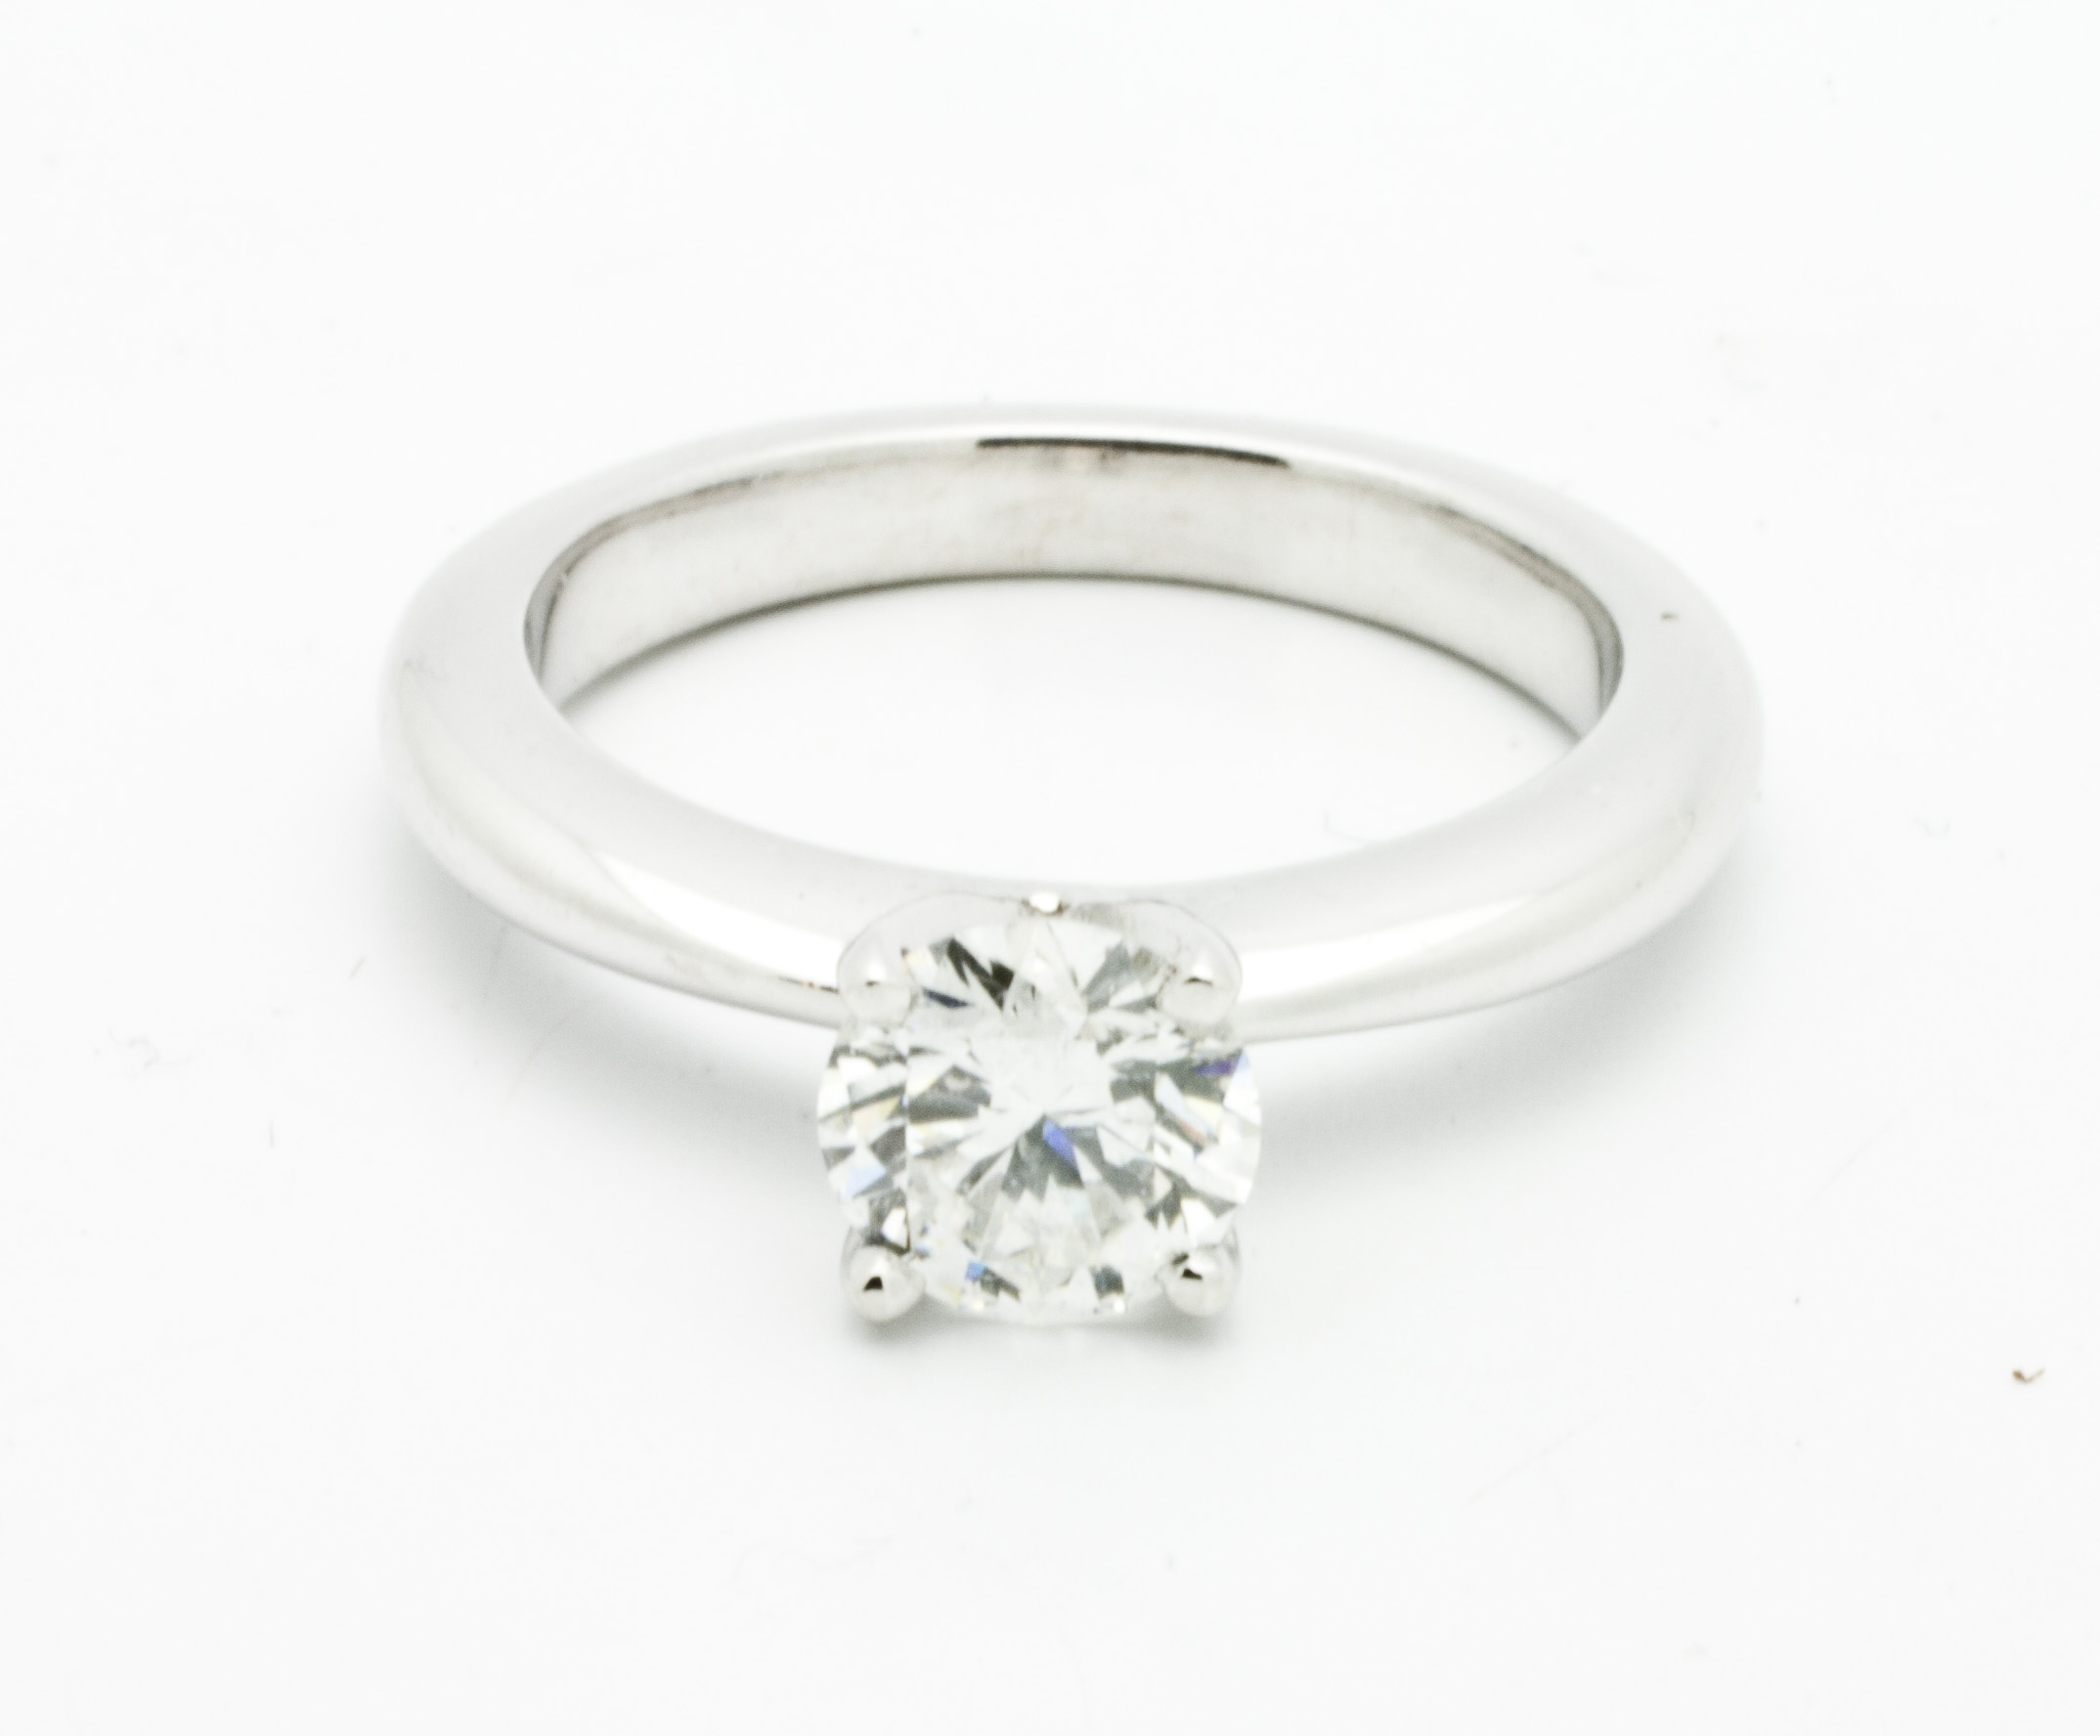 0.42ct round brilliant cut diamond center stone,14kt white gold, traditional 4 claw solitaire ring.  Starting at $2000 for this stone size andSI-1 clarity F colour  Can be customizable with any stone, size, metal etc.